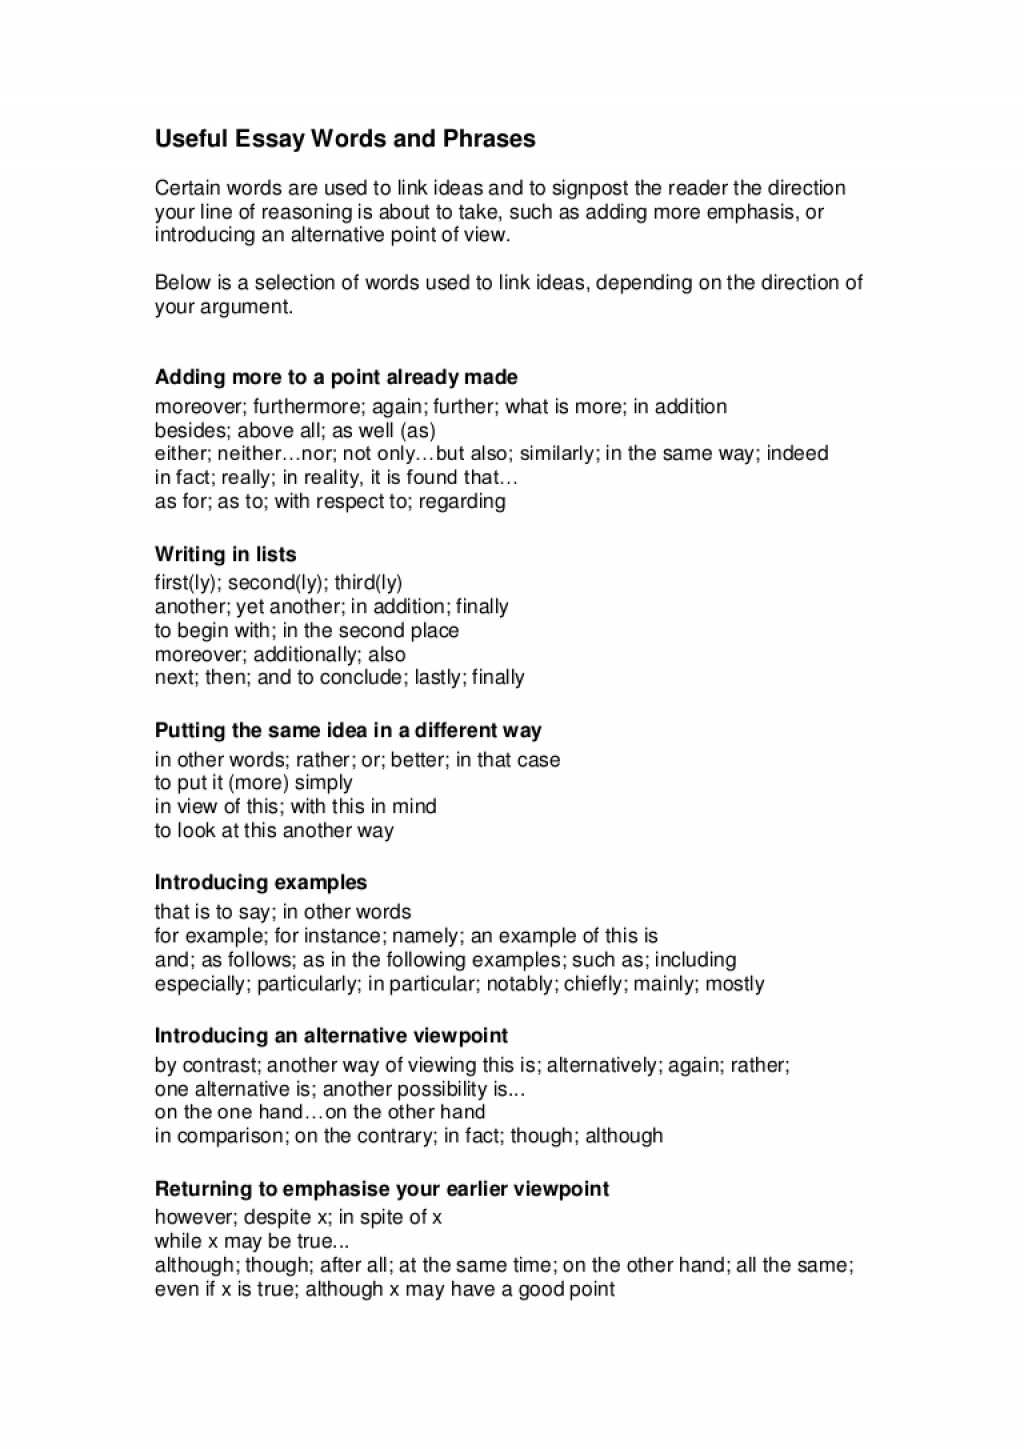 020 Essay Example Writtenassignments2usefulessaywordsandphrases Phpapp02 Thumbnail How To Begin Amazing A Critical Review Structure Response Large